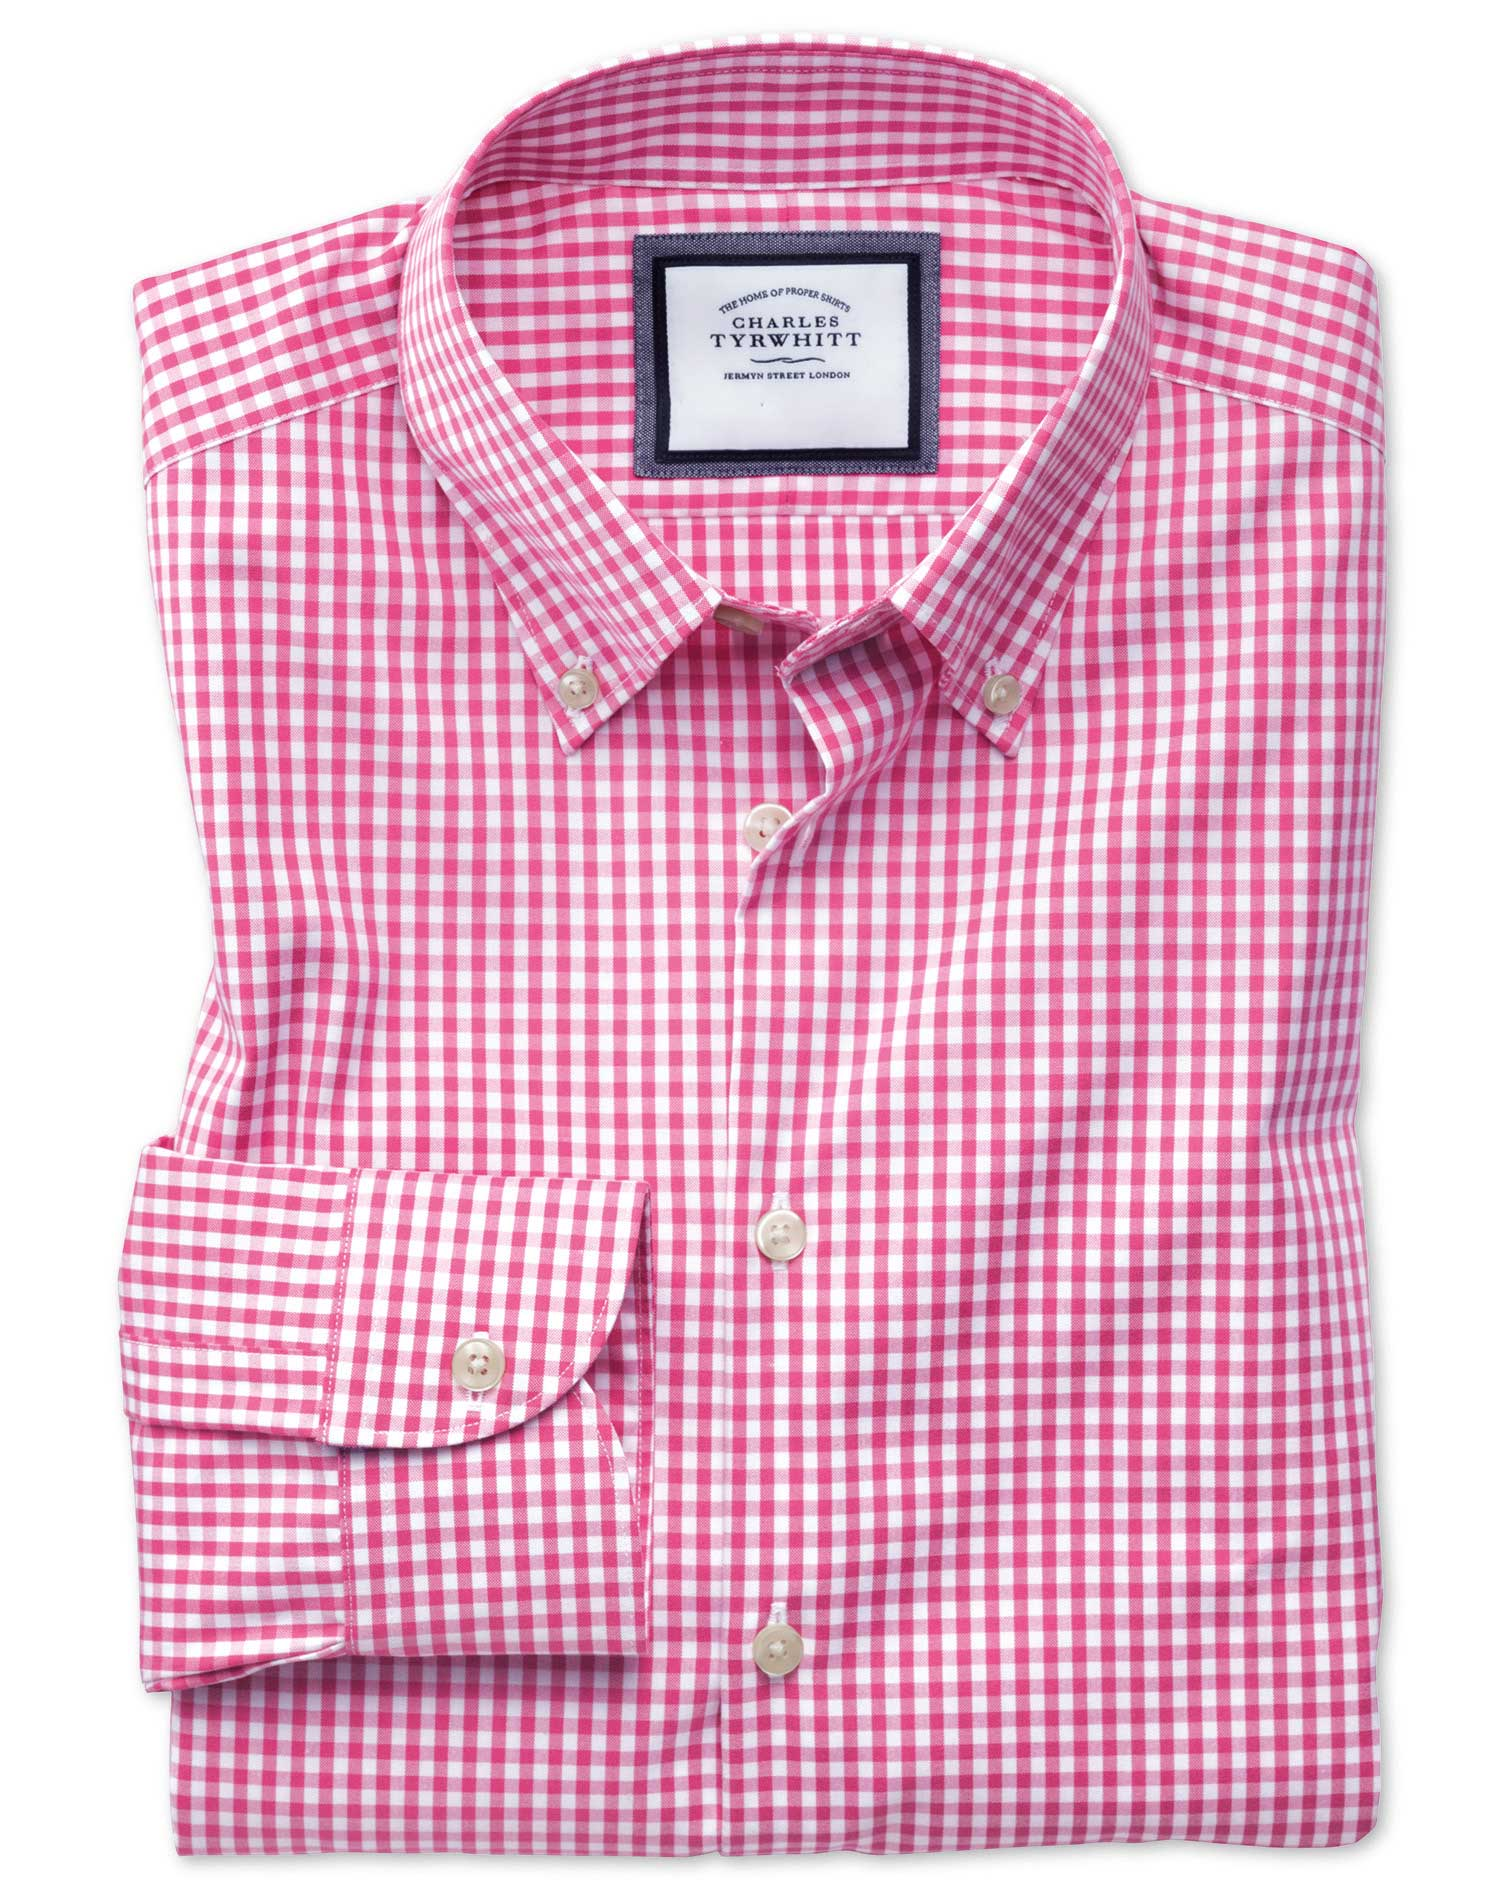 Extra Slim Fit Button-Down Business Casual Non-Iron Pink Cotton Formal Shirt Single Cuff Size 15/33